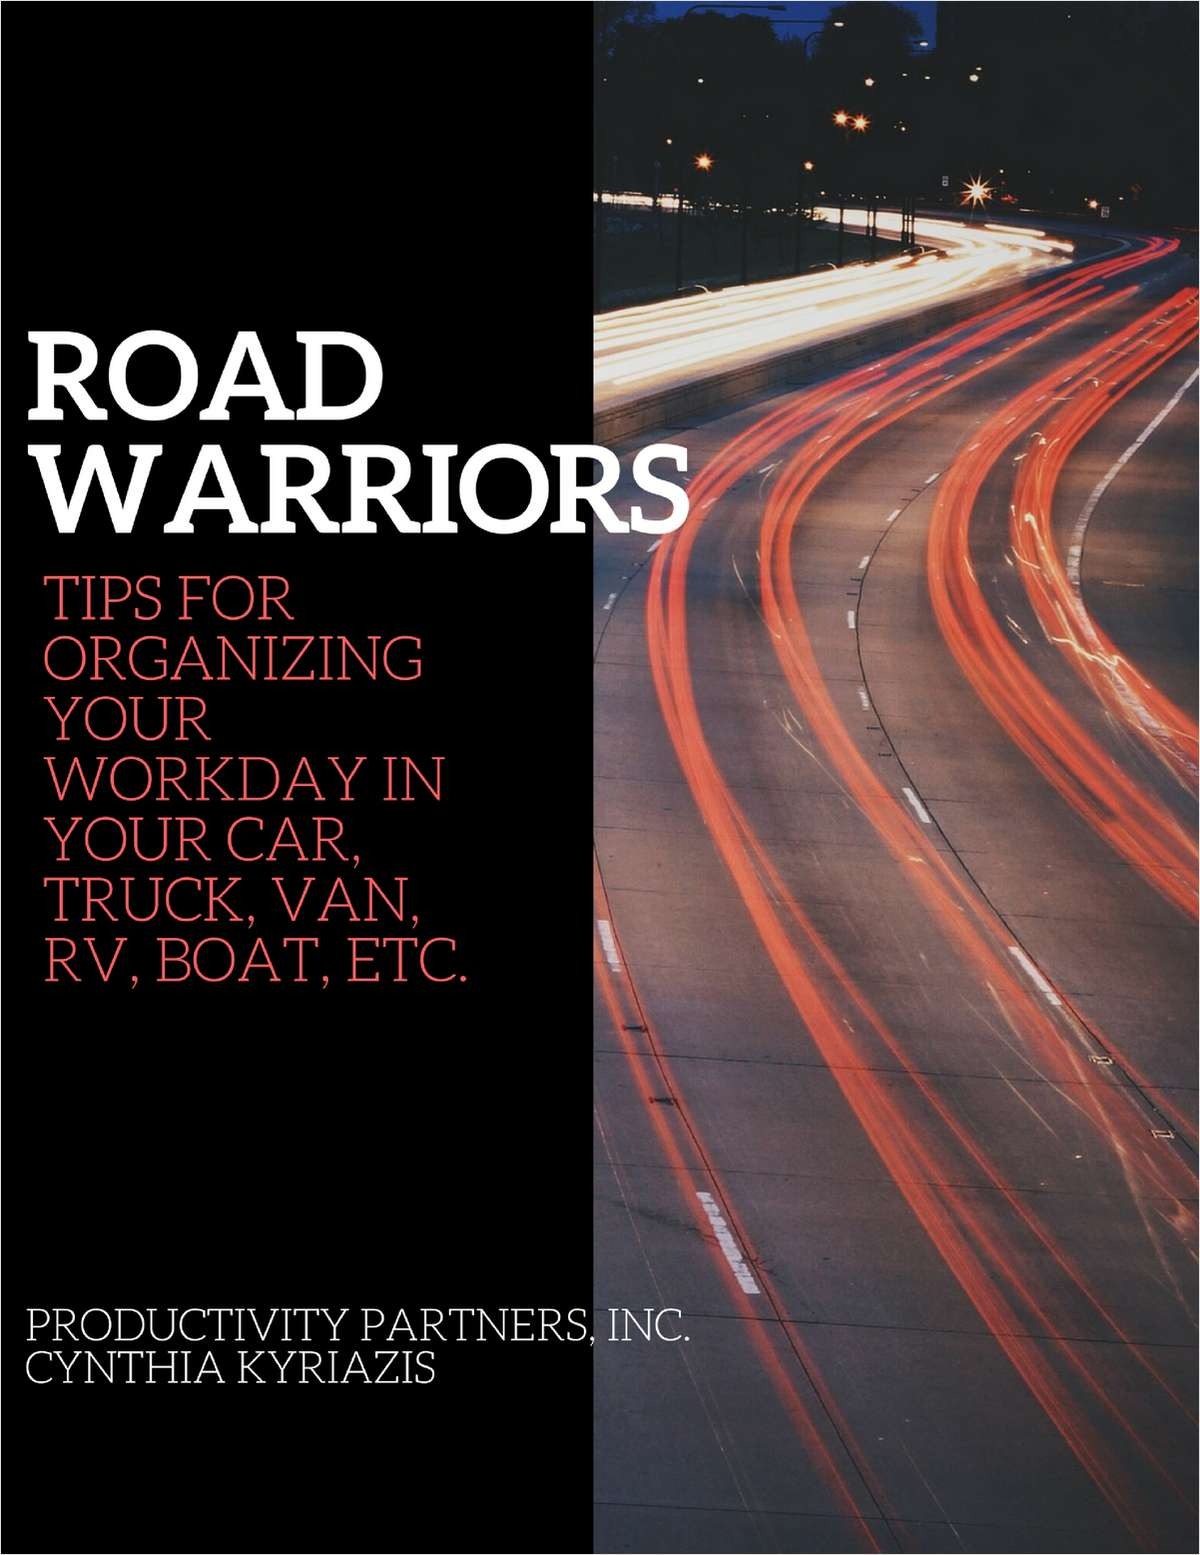 Road Warriors - Tips for Organizing Your Workday in Your Car, Truck, Van, RV, Boat, Etc.